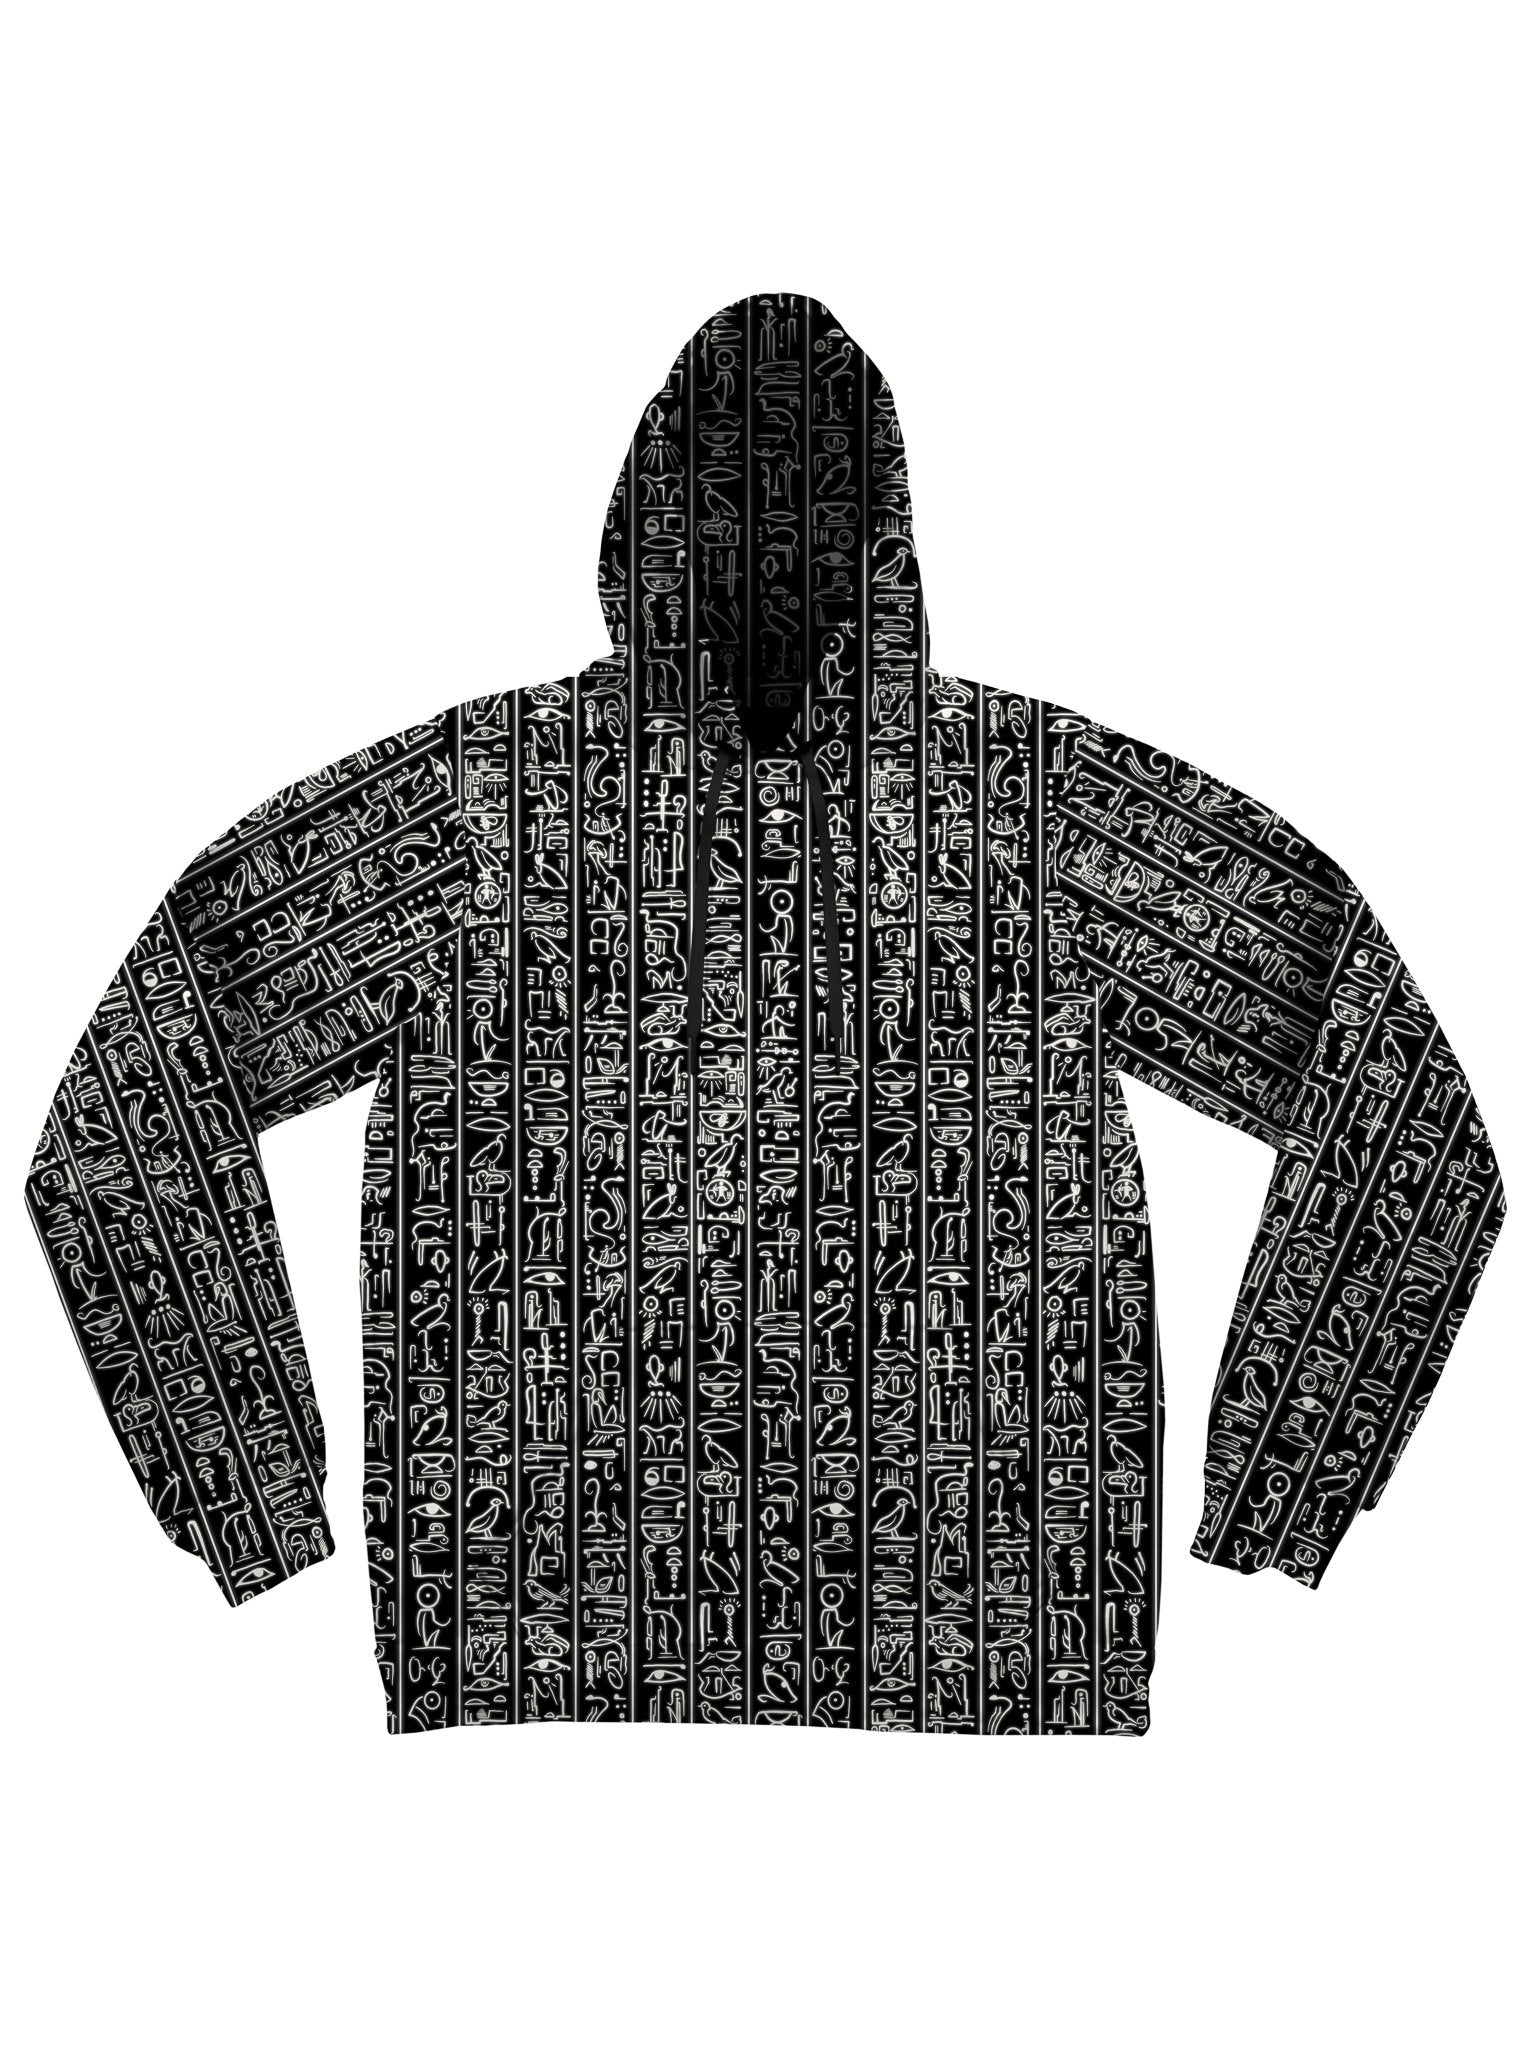 Egyptian Glyphs (Black) Unisex Hoodie Pullover Hoodies Electro Threads